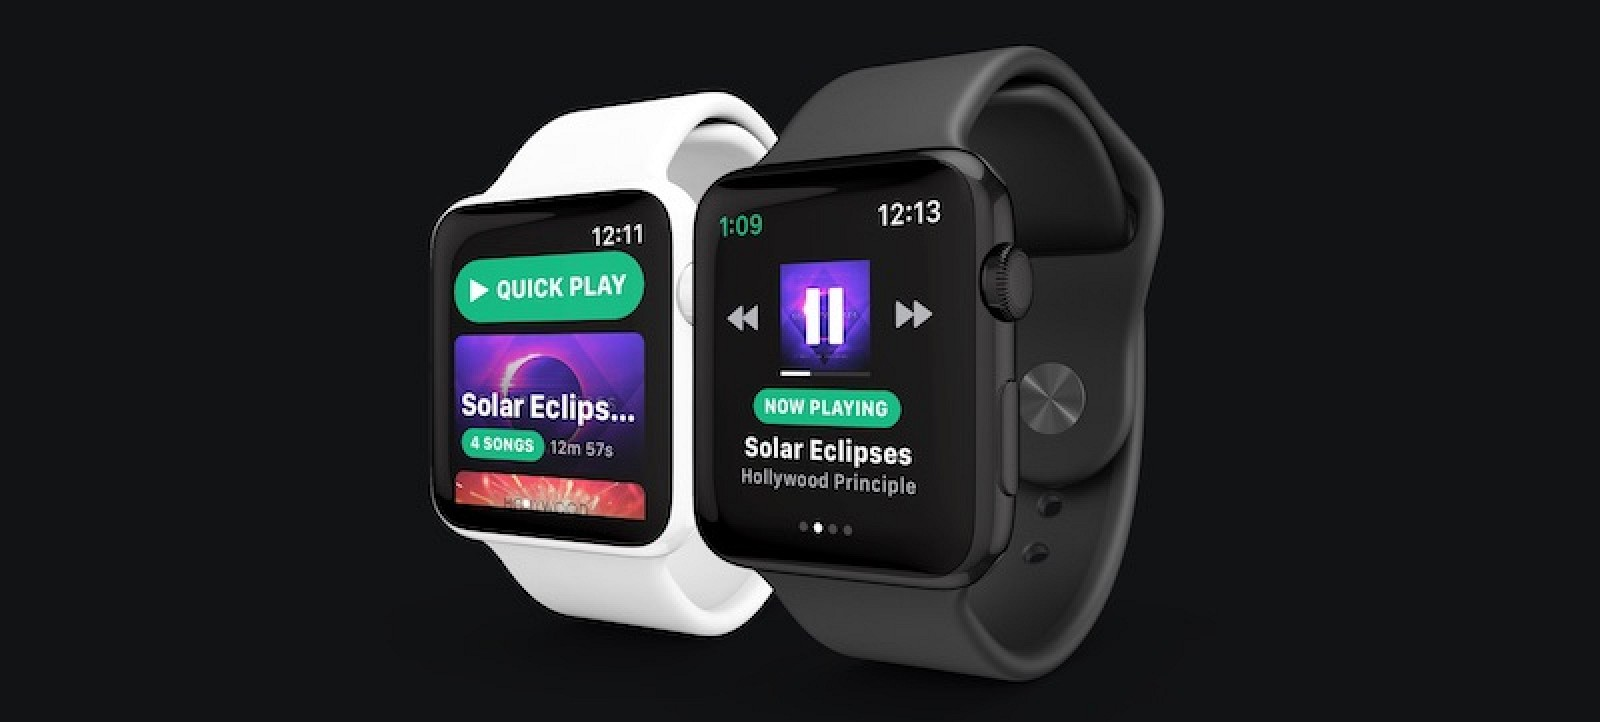 Spotify Coming To Apple Watch Thanks to Partnership With ...